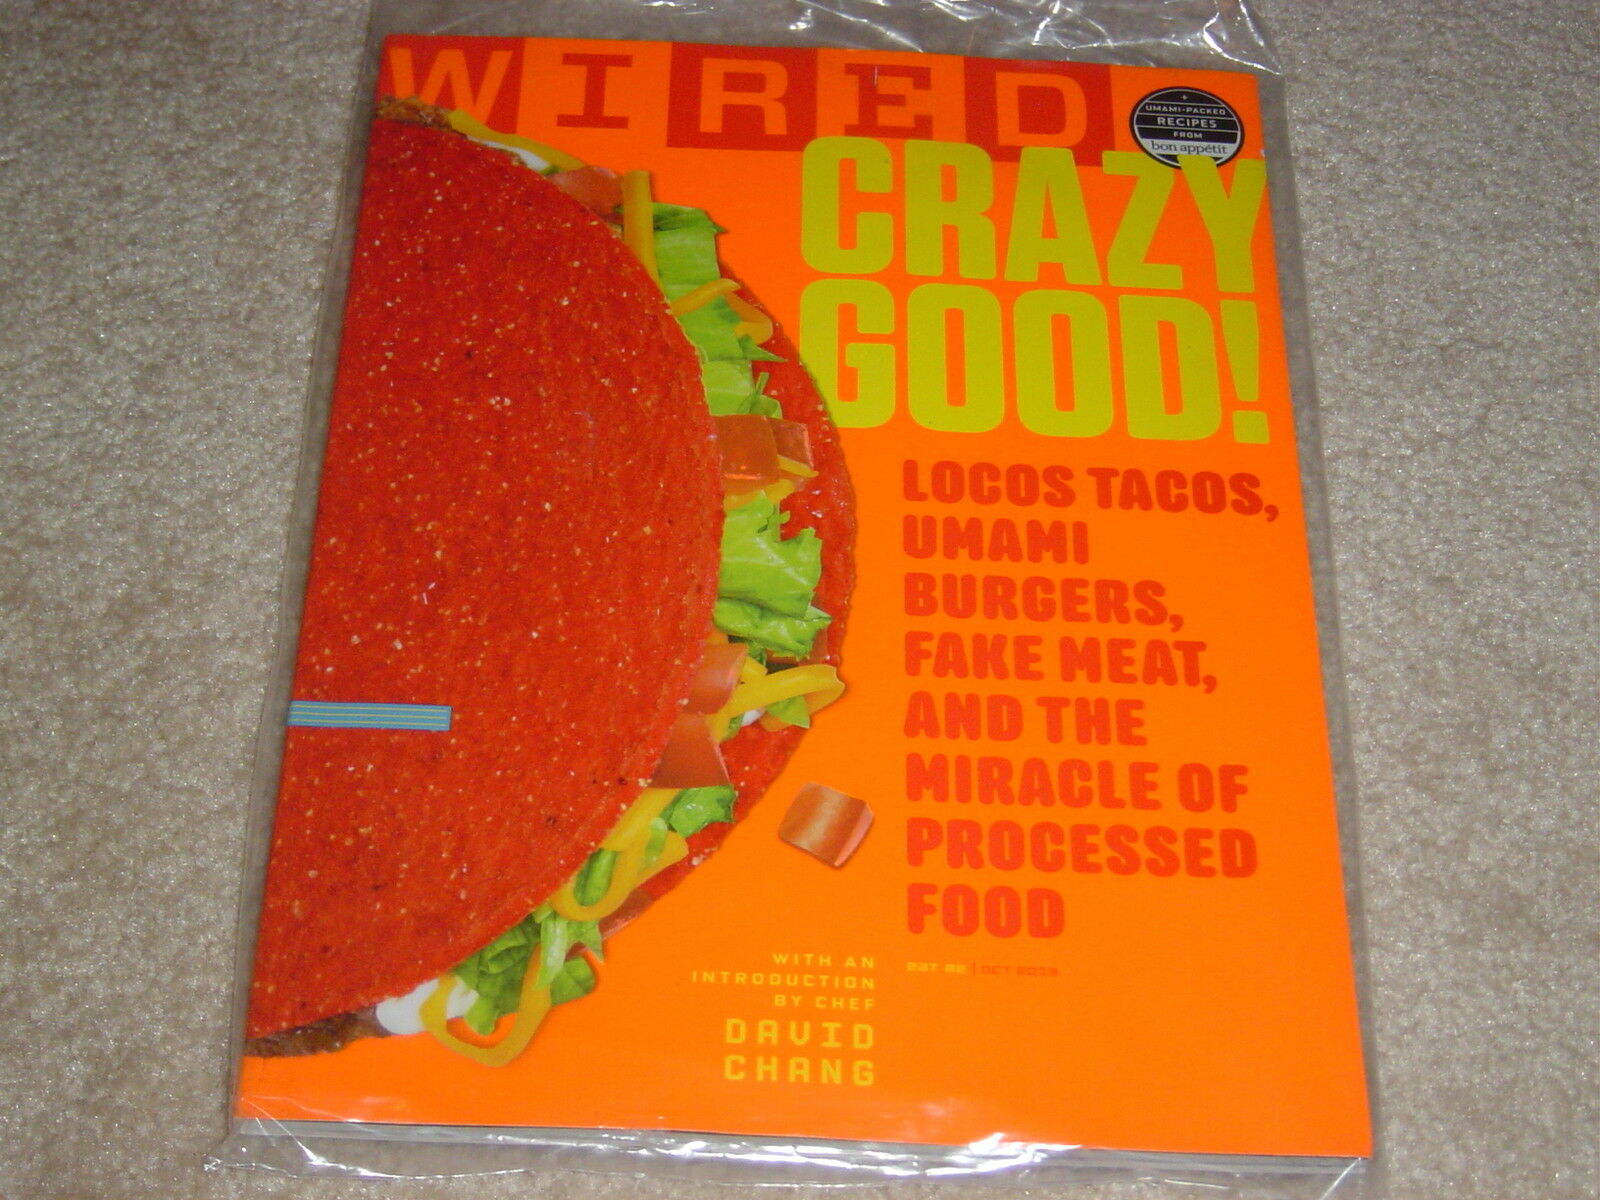 CRAZY GOOD * PROCESSED FOOD LOCO TACOS FAKE MEAT October 2013 WIRED ...